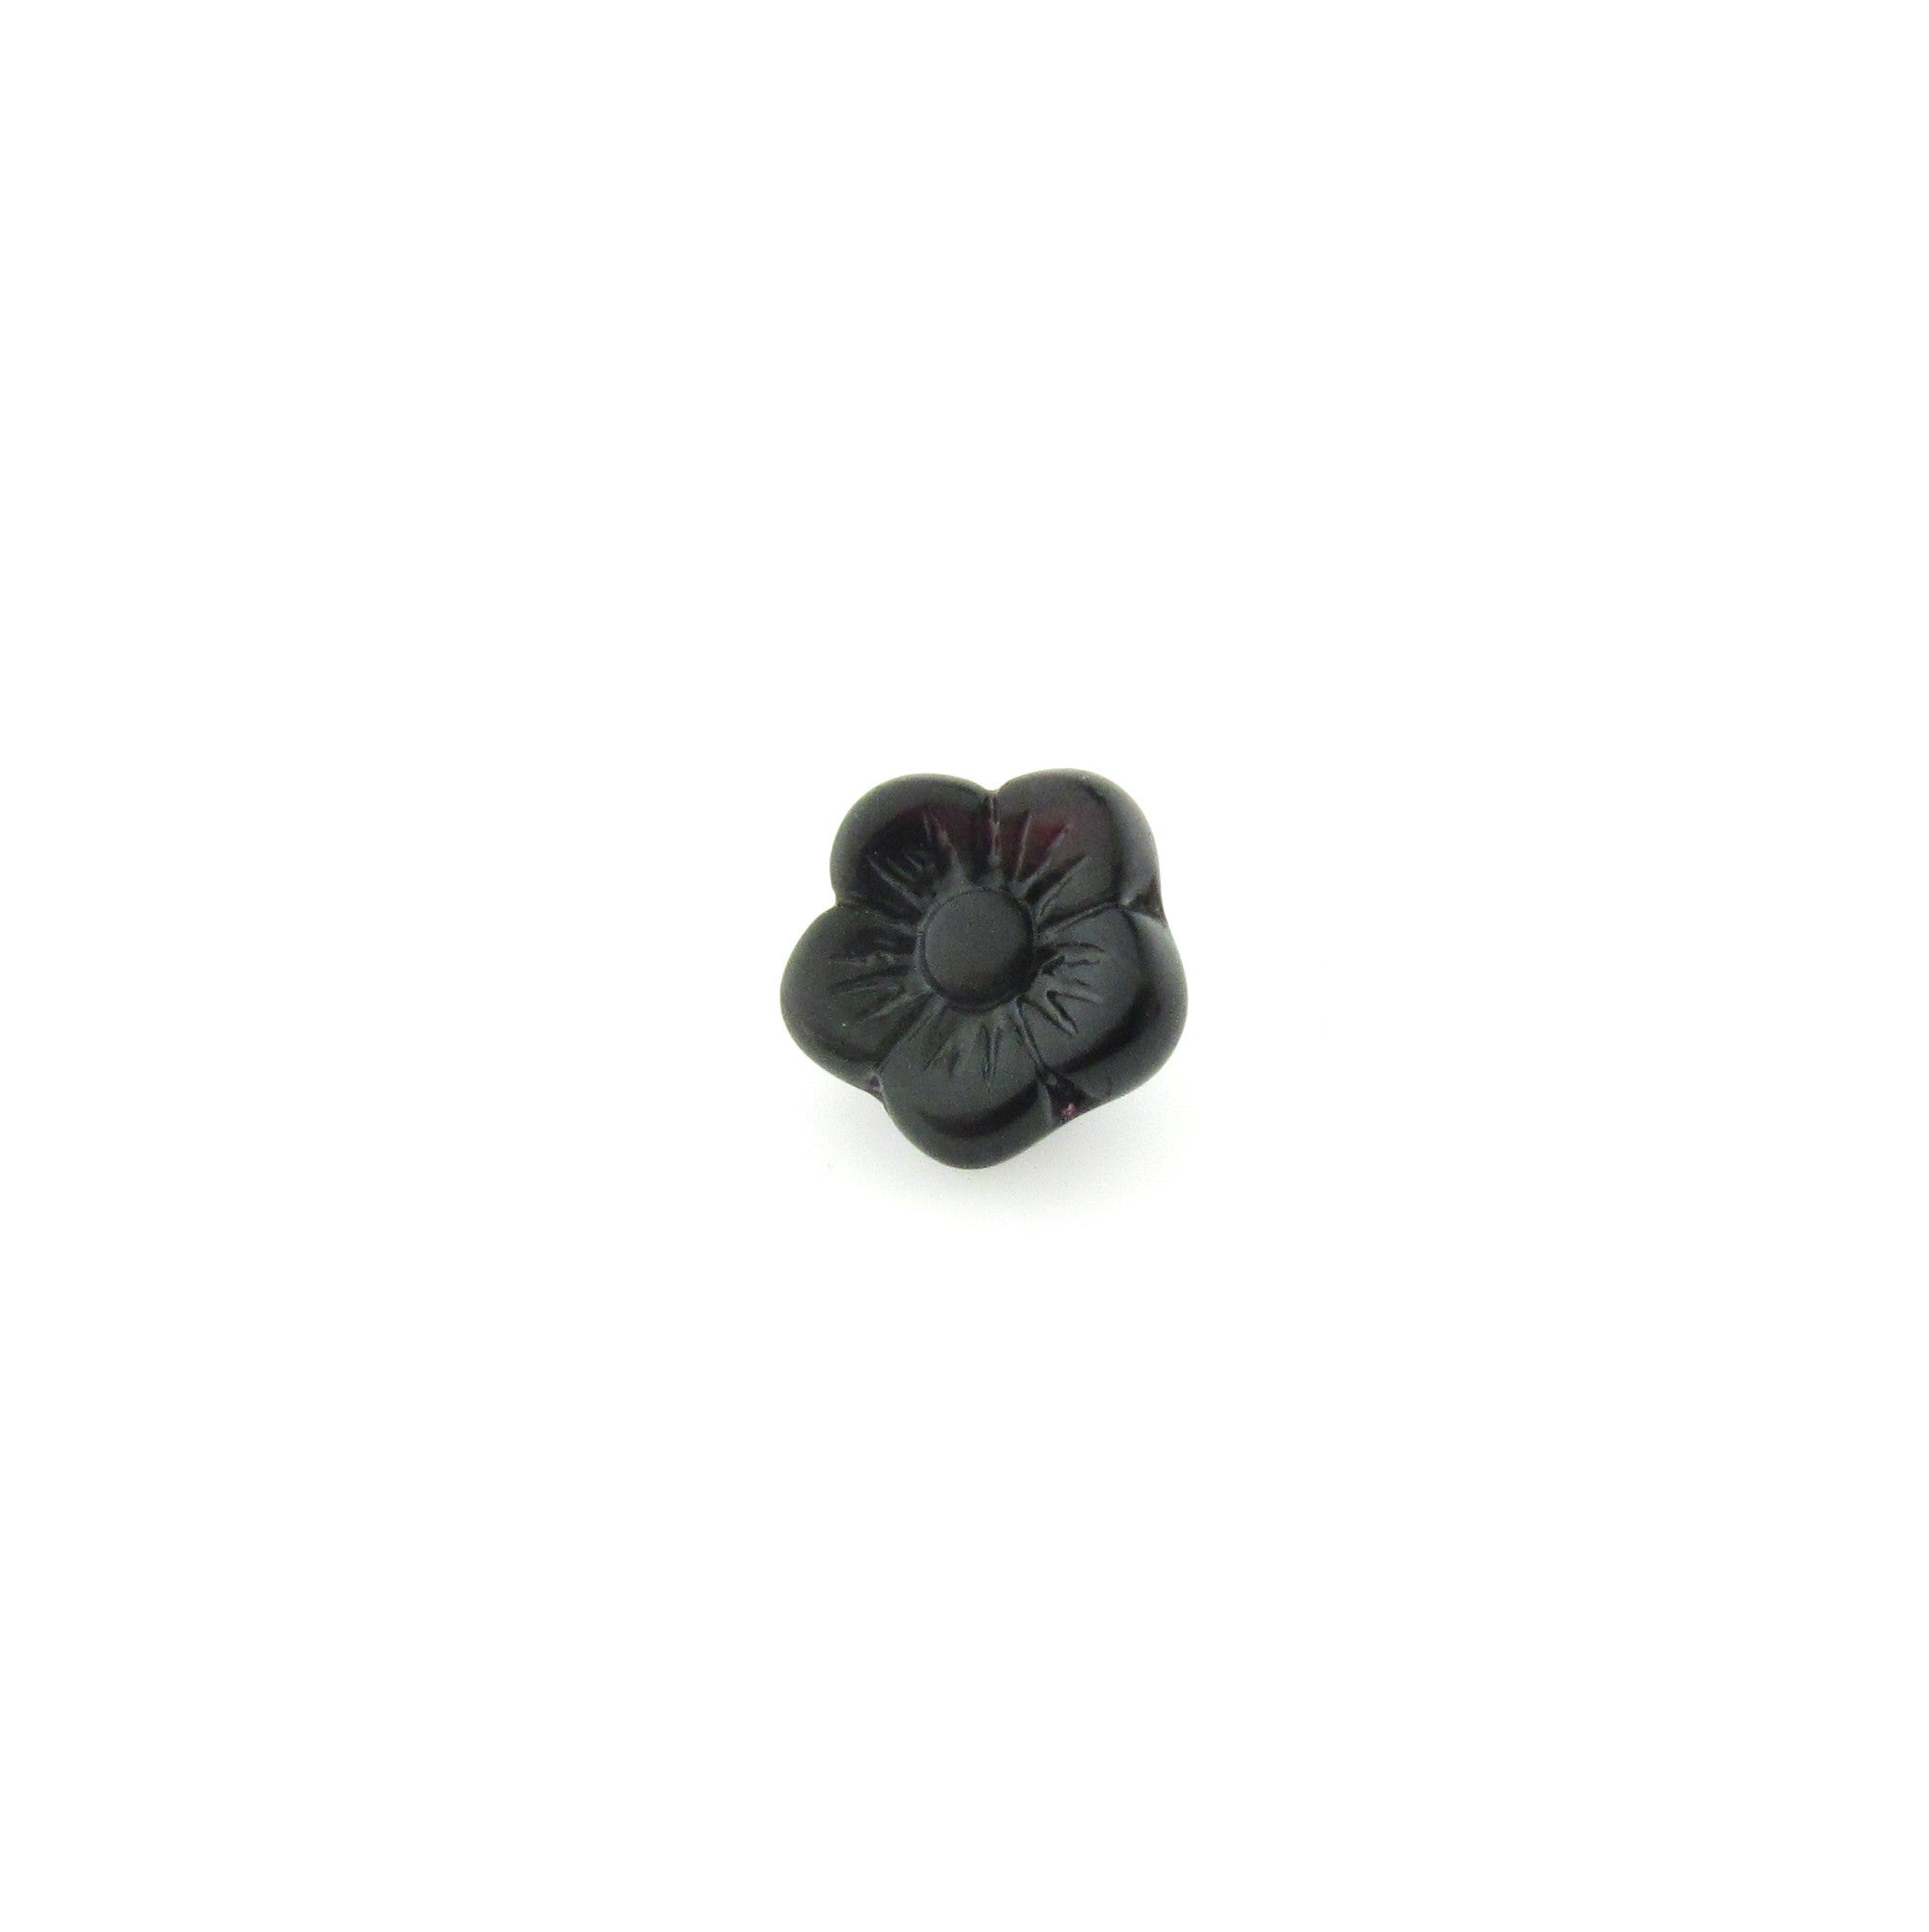 Black Givre Glass Flower Bead (72 pieces)